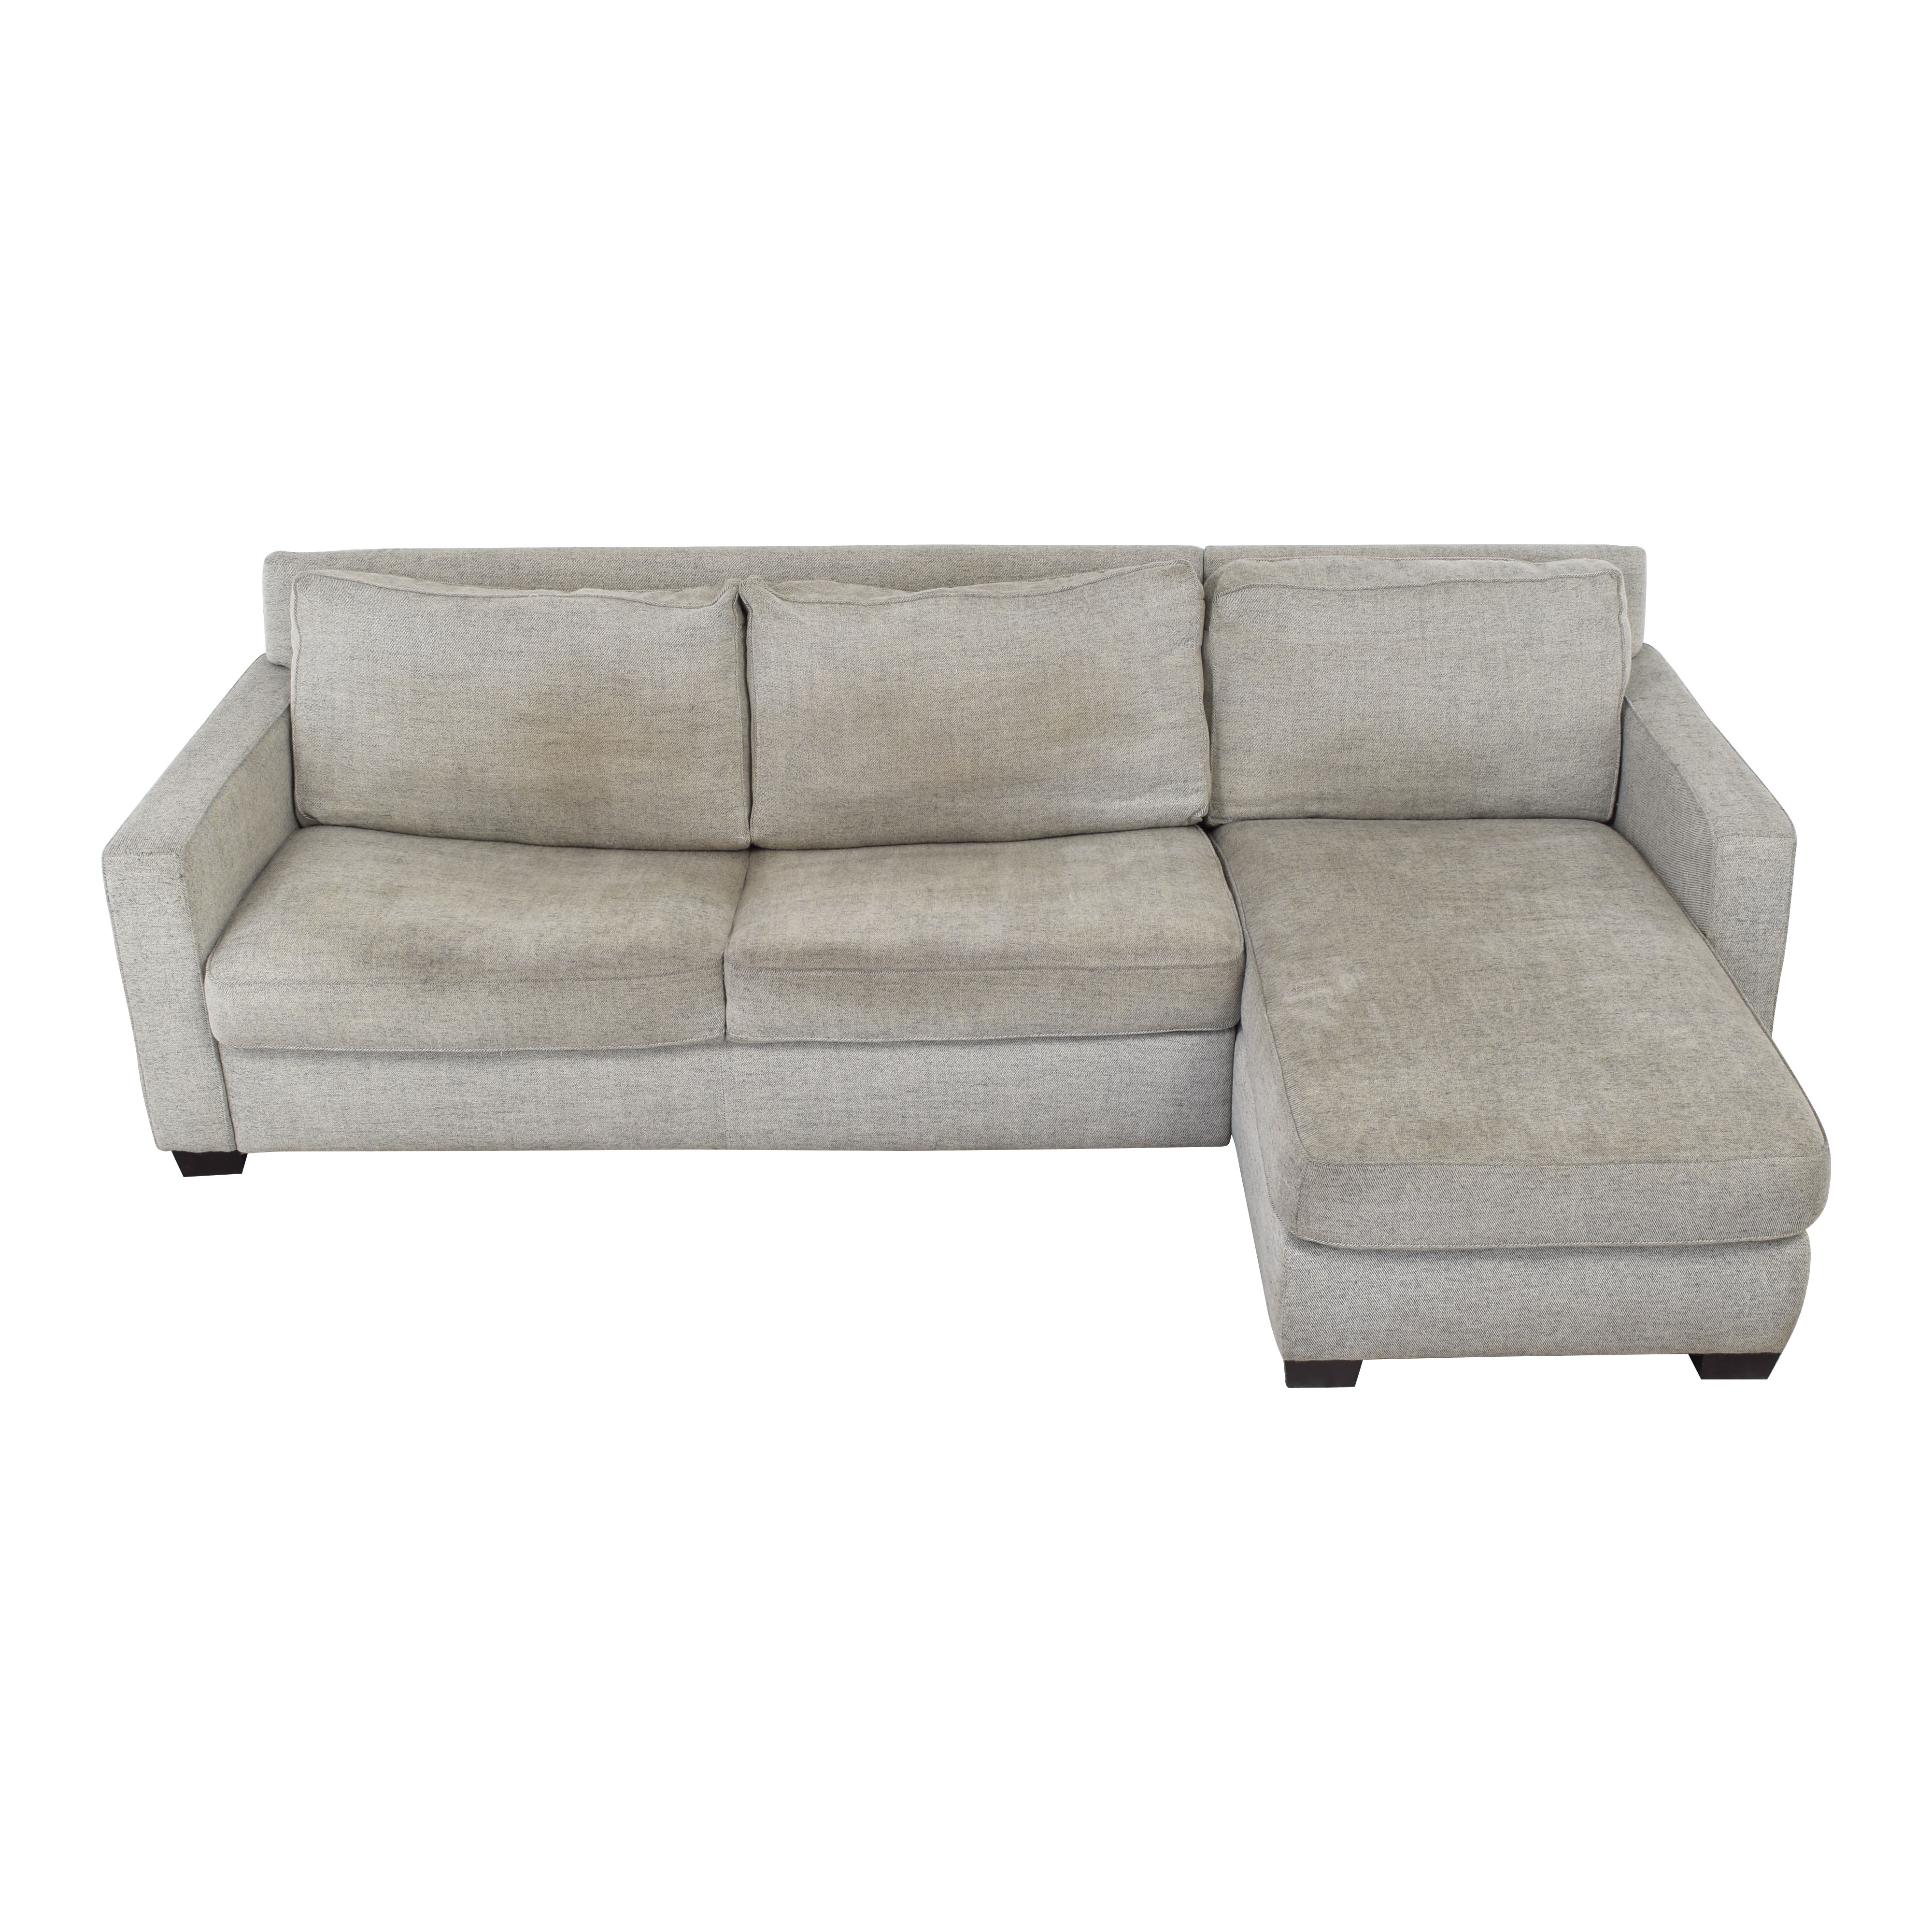 West Elm West Elm Henry Two Piece Queen Sectional Sleeper with Storage nj